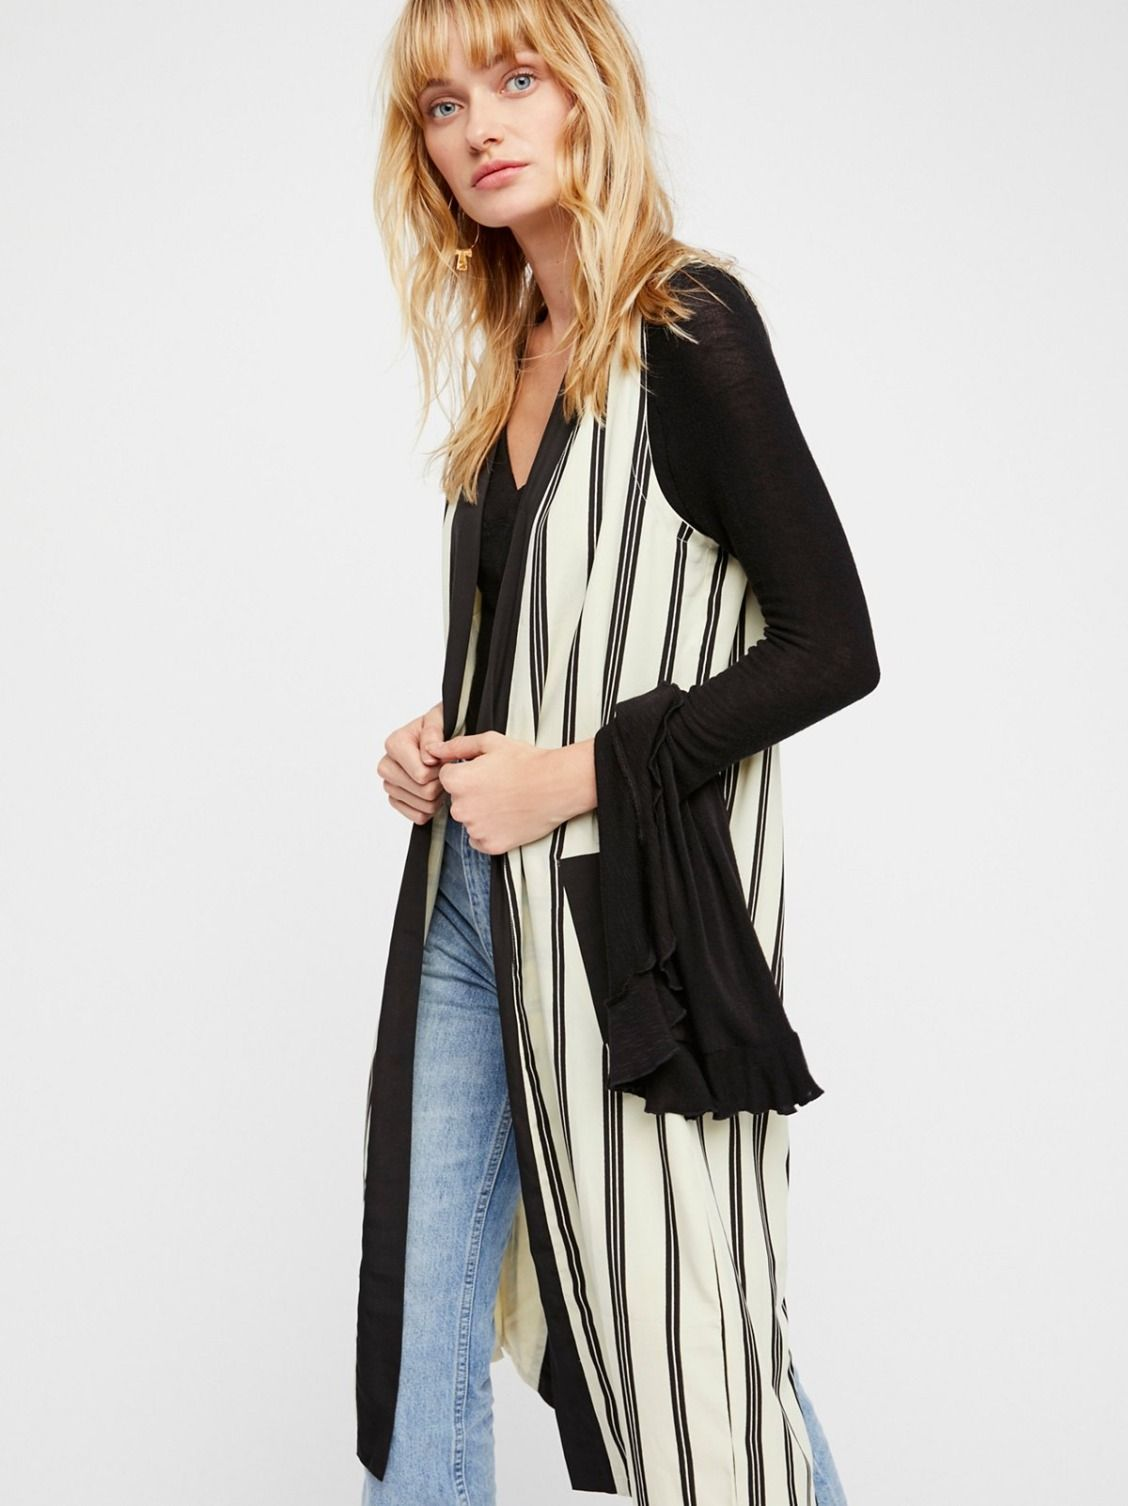 Between The Lines Pinstripe Vest Fashion, Pinstripe